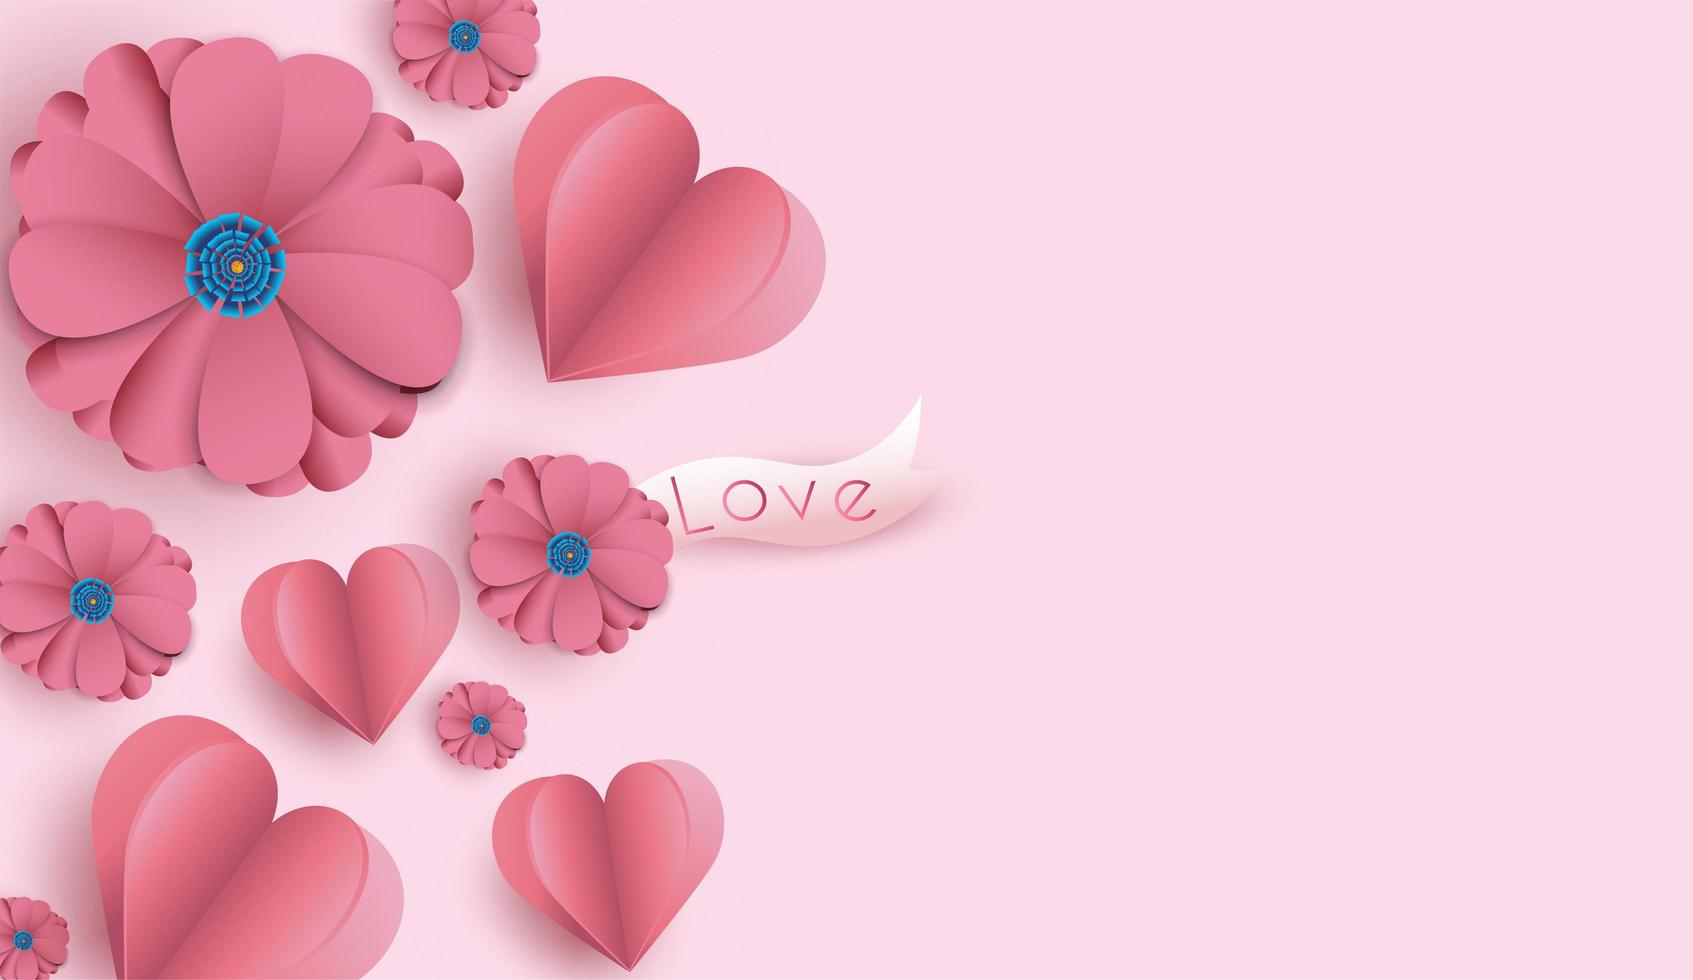 Valentine's Day background with paper cut flowers and hearts